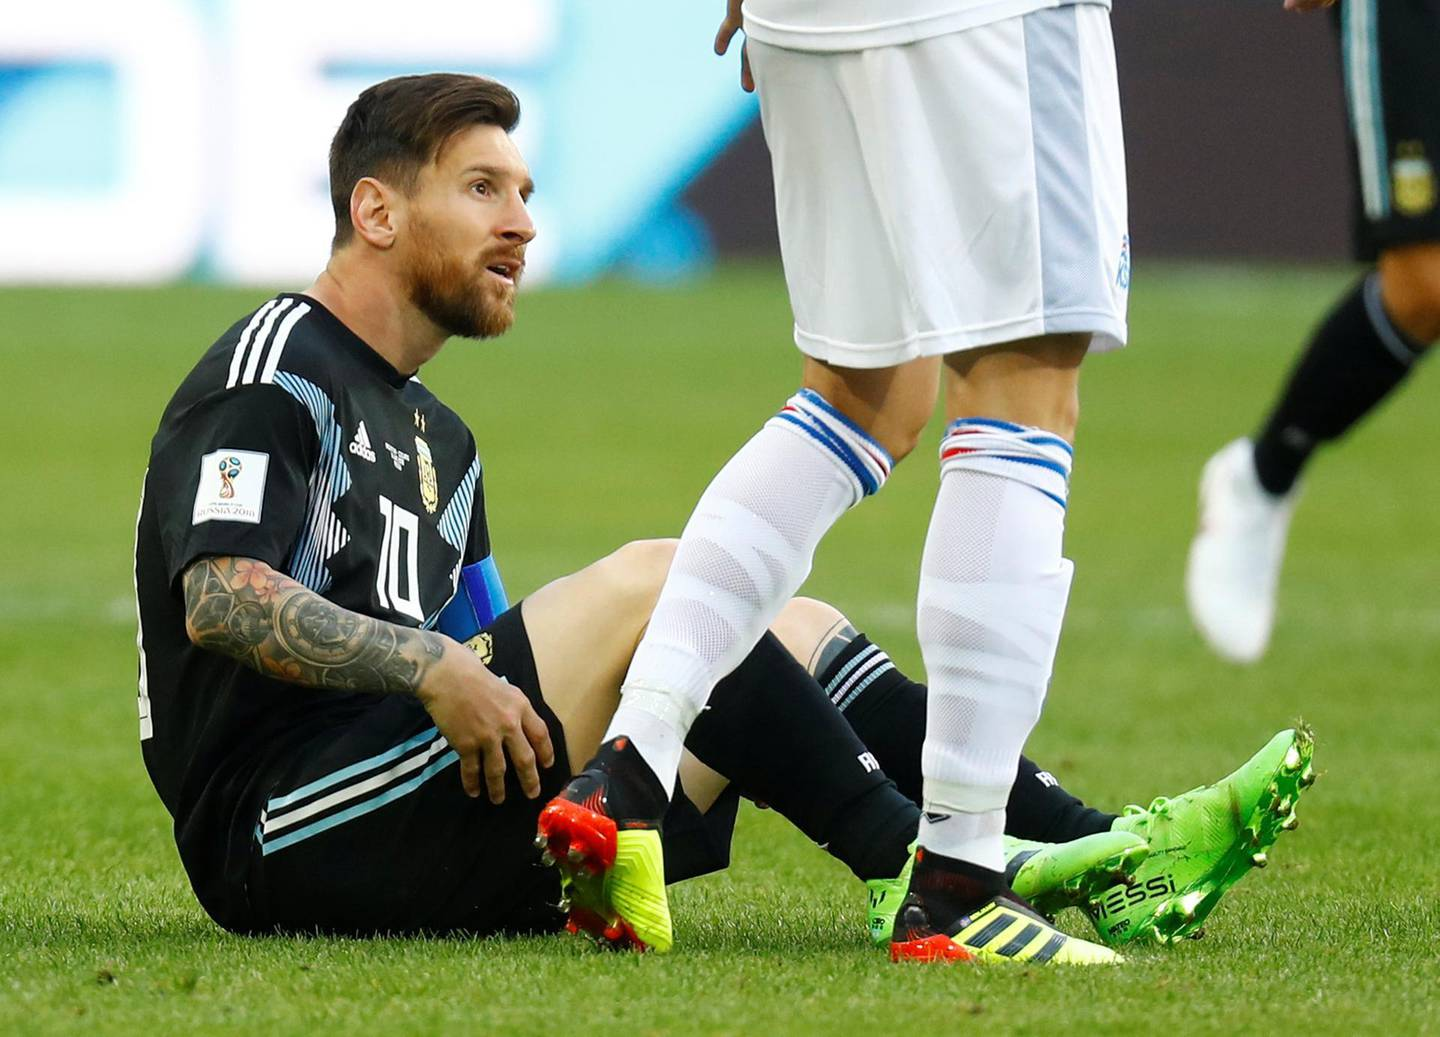 Soccer Football - World Cup - Group D - Argentina vs Iceland - Spartak Stadium, Moscow, Russia - June 16, 2018   Argentina's Lionel Messi looks on     REUTERS/Kai Pfaffenbach